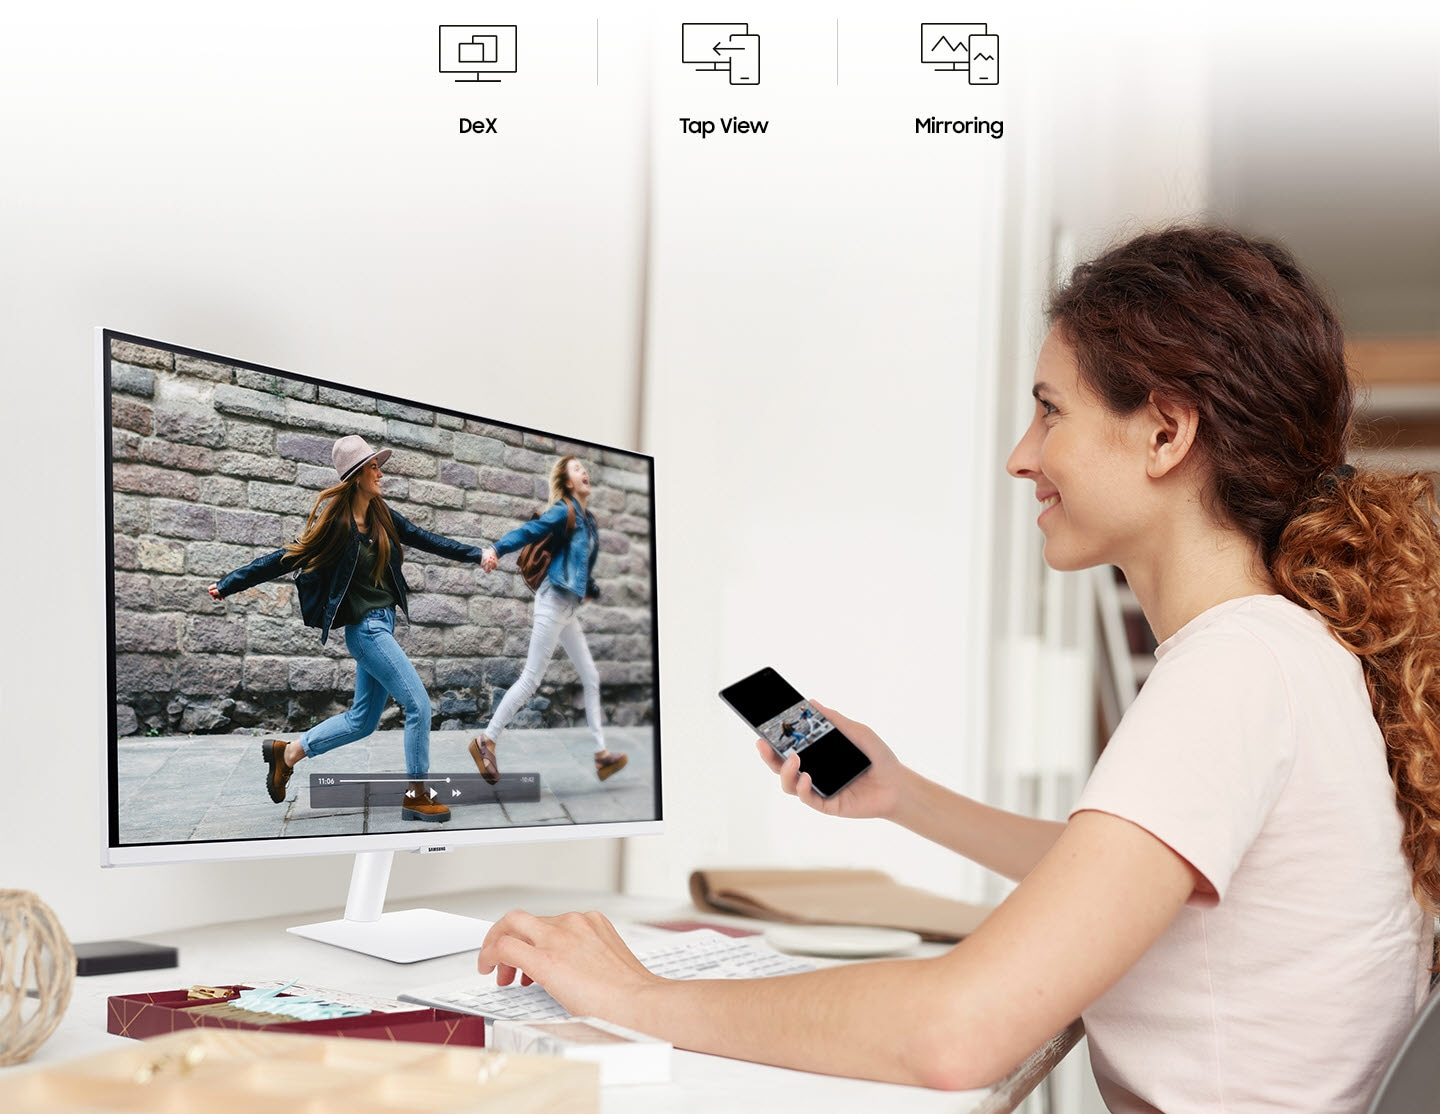 A smiling woman mirrors videos from her phone to her monitor. At the top are the DeX, Tap View, and Mirroring icons.